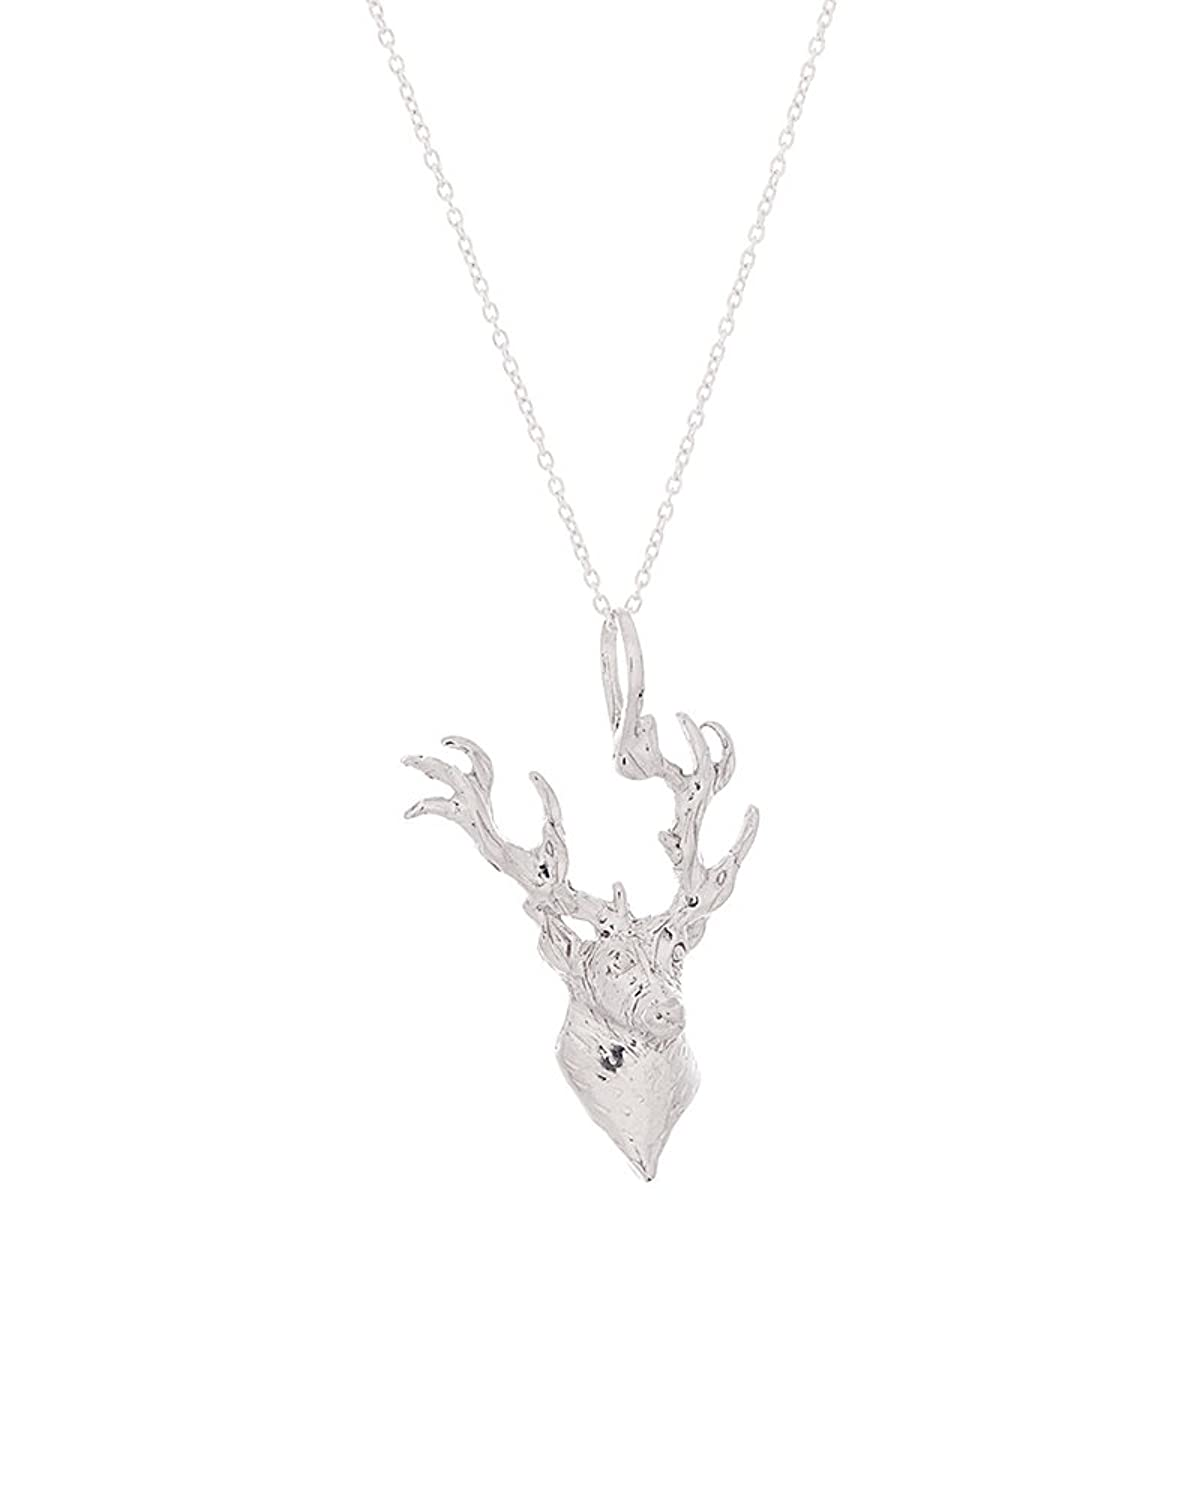 """.925 Sterling Silver Deer Head Pendant w/ 18"""" Cable Chain Necklace"""